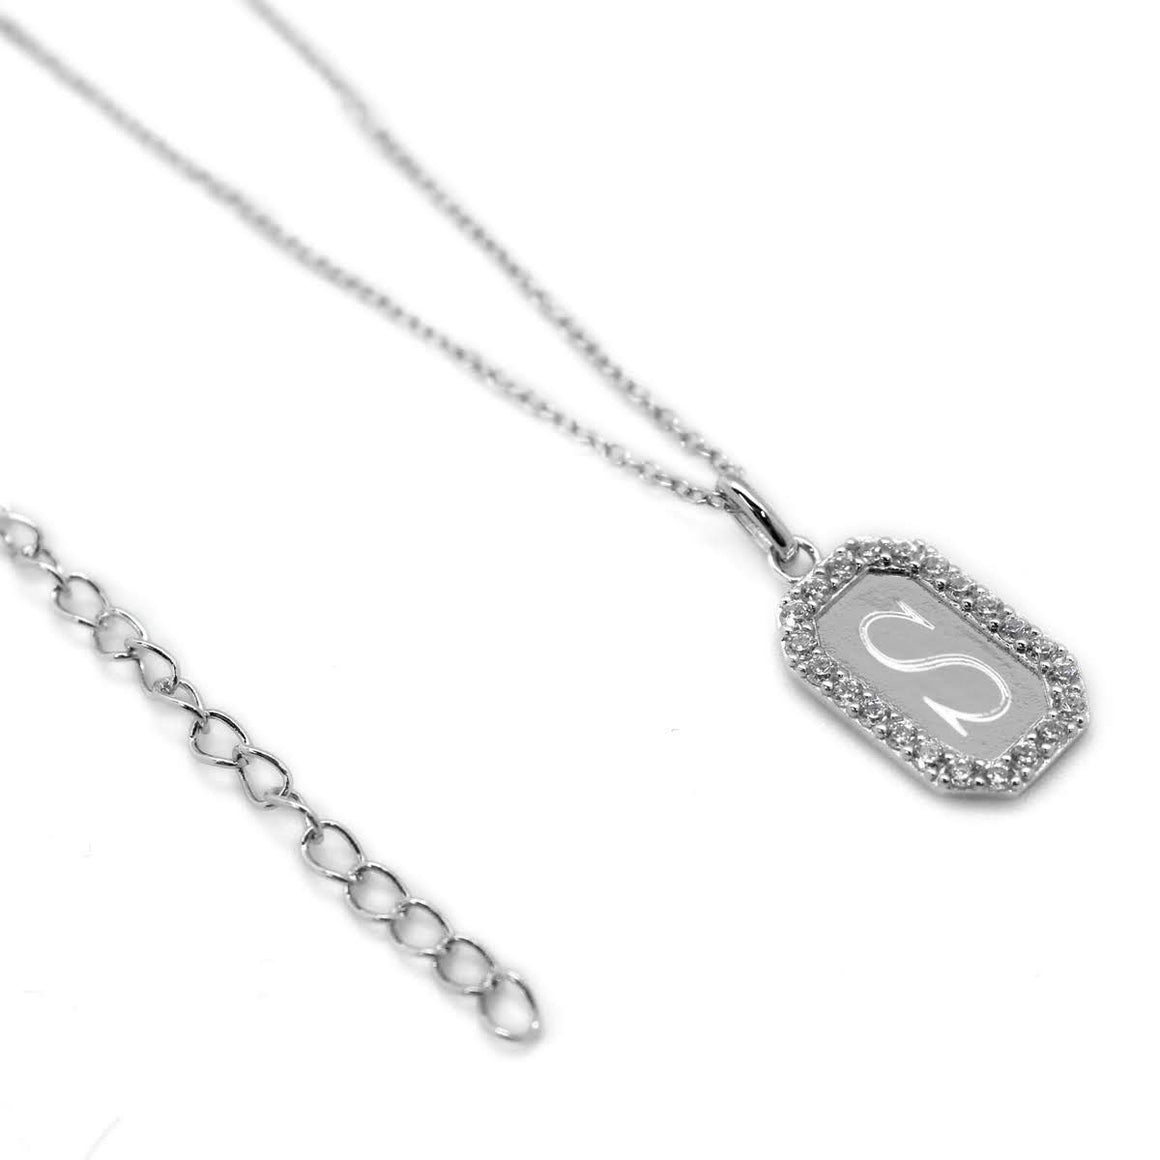 STERLING SILVER DESIGNER INSPIRED CLEAR CZ ENGRAVABLE NECKLACE